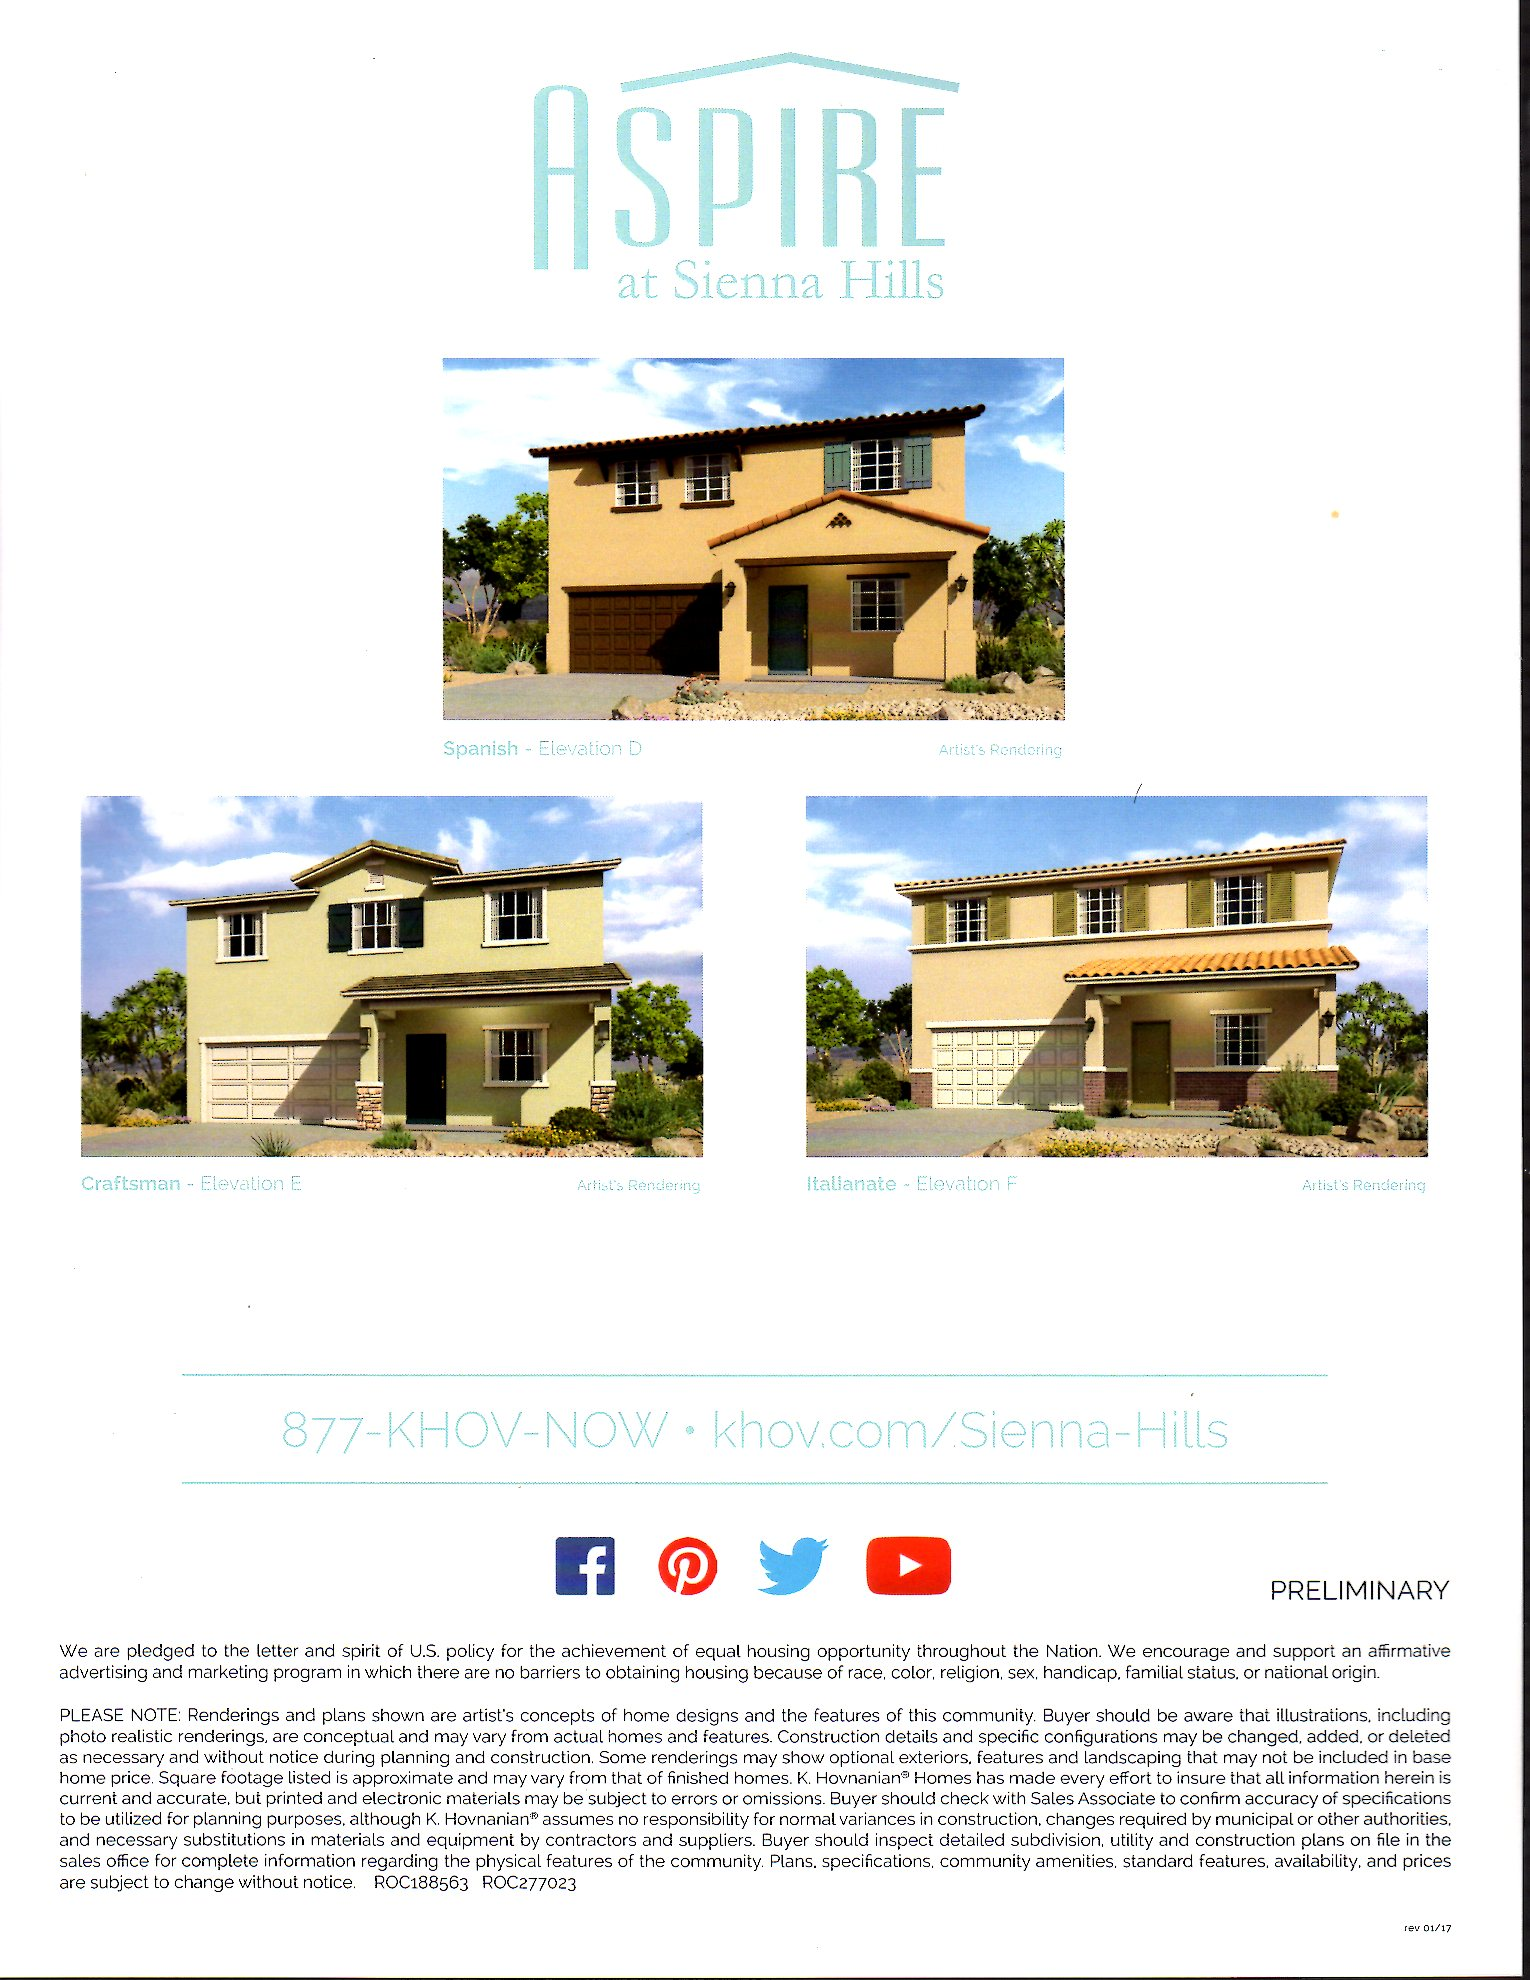 Jubilee - 2244 sq ft Two Level Home